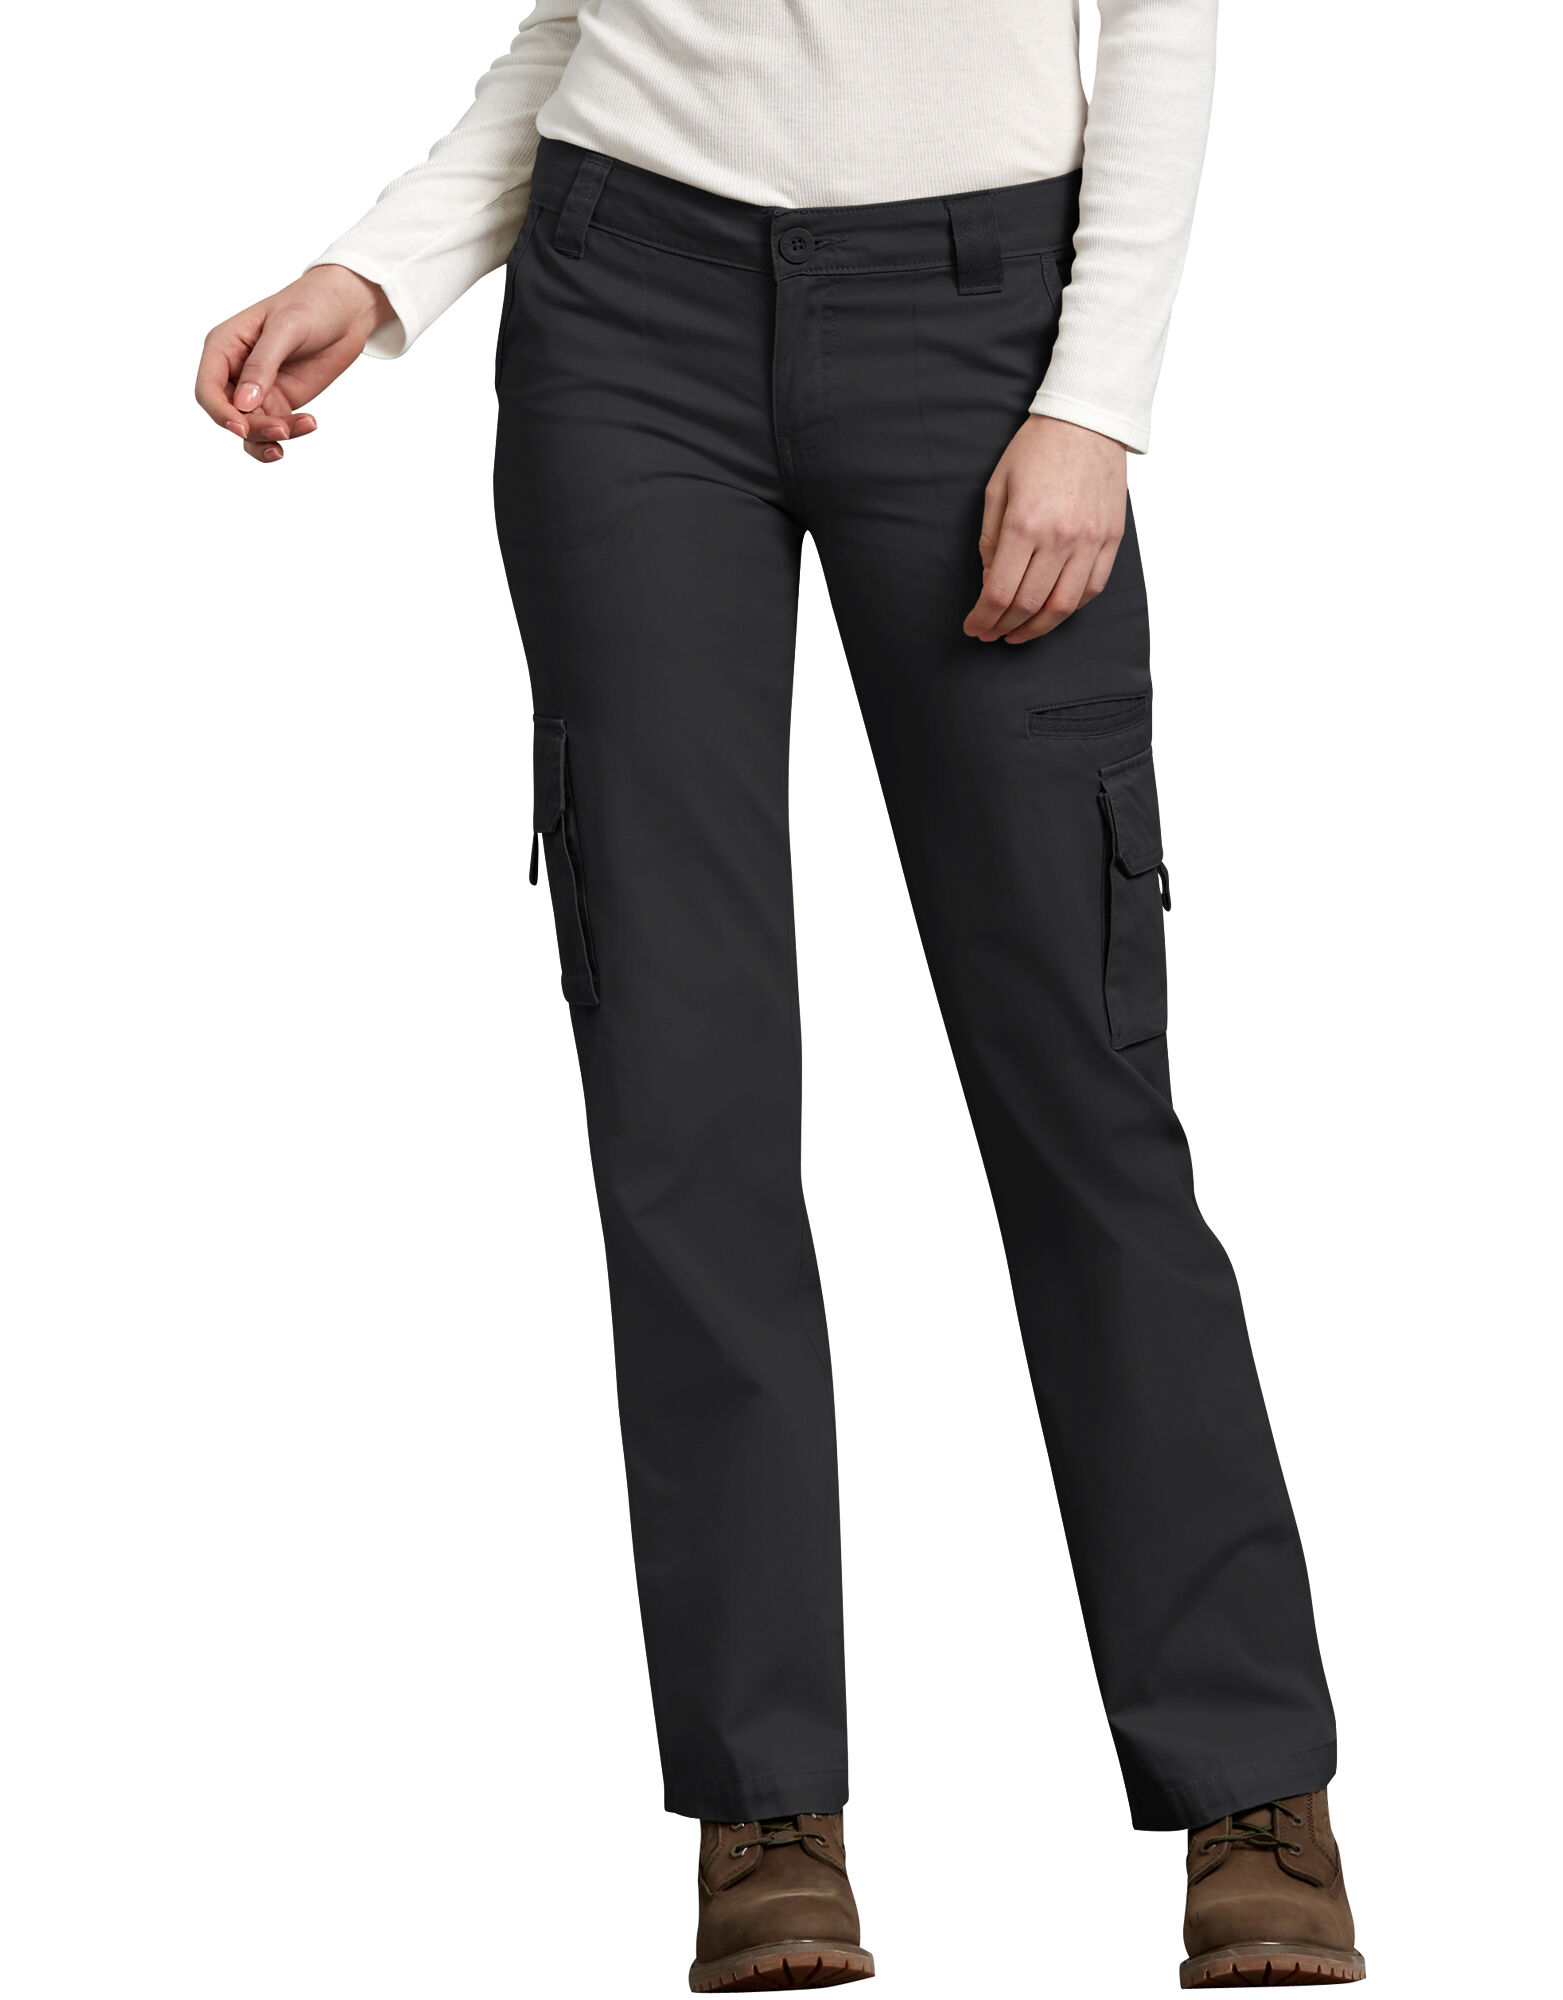 The fun prints of women's cargo pants allow you to mix and match pieces for a unique look that is tailored to your curves. Boyfriends skinny pants are great for playing up your look with edgy style. Add your pretty heels for a stylish ensemble for shopping with your girlfriends.